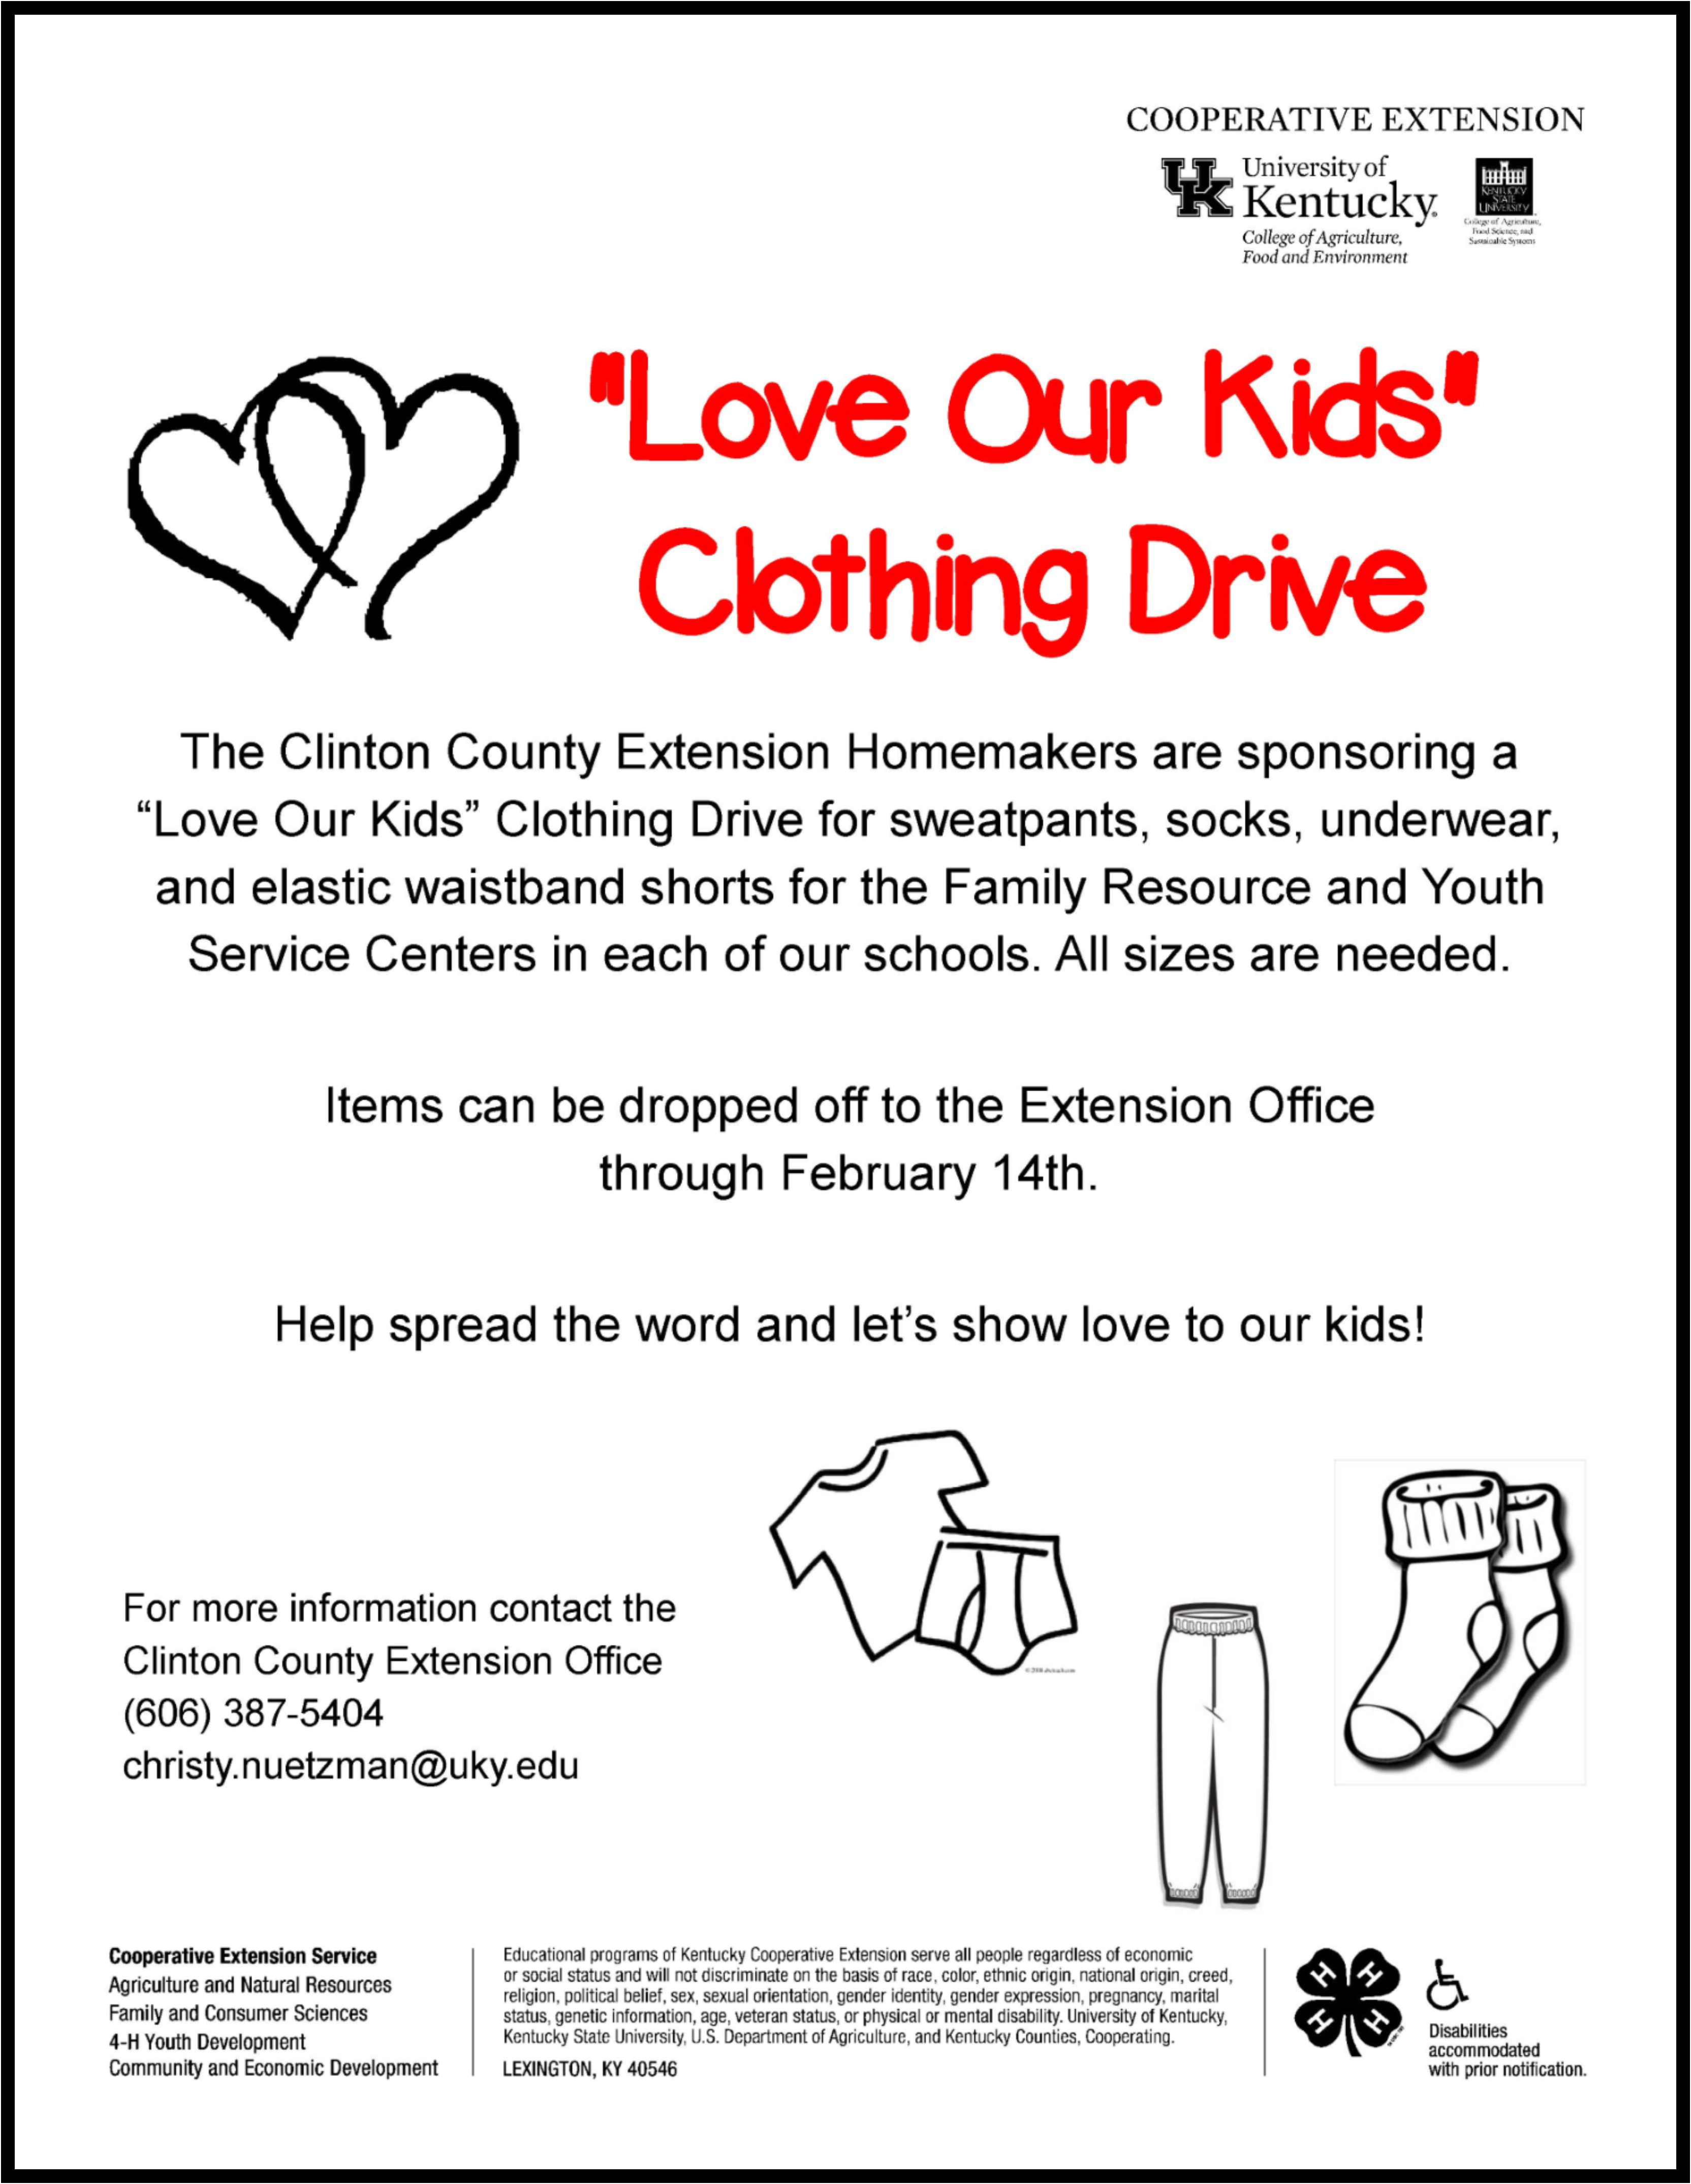 "The Clinton County Extension Homemakers are sponsoring a ""Love Our Kids"" Clothing Drive for the Family Resource and Youth Service Centers in each of our schools."